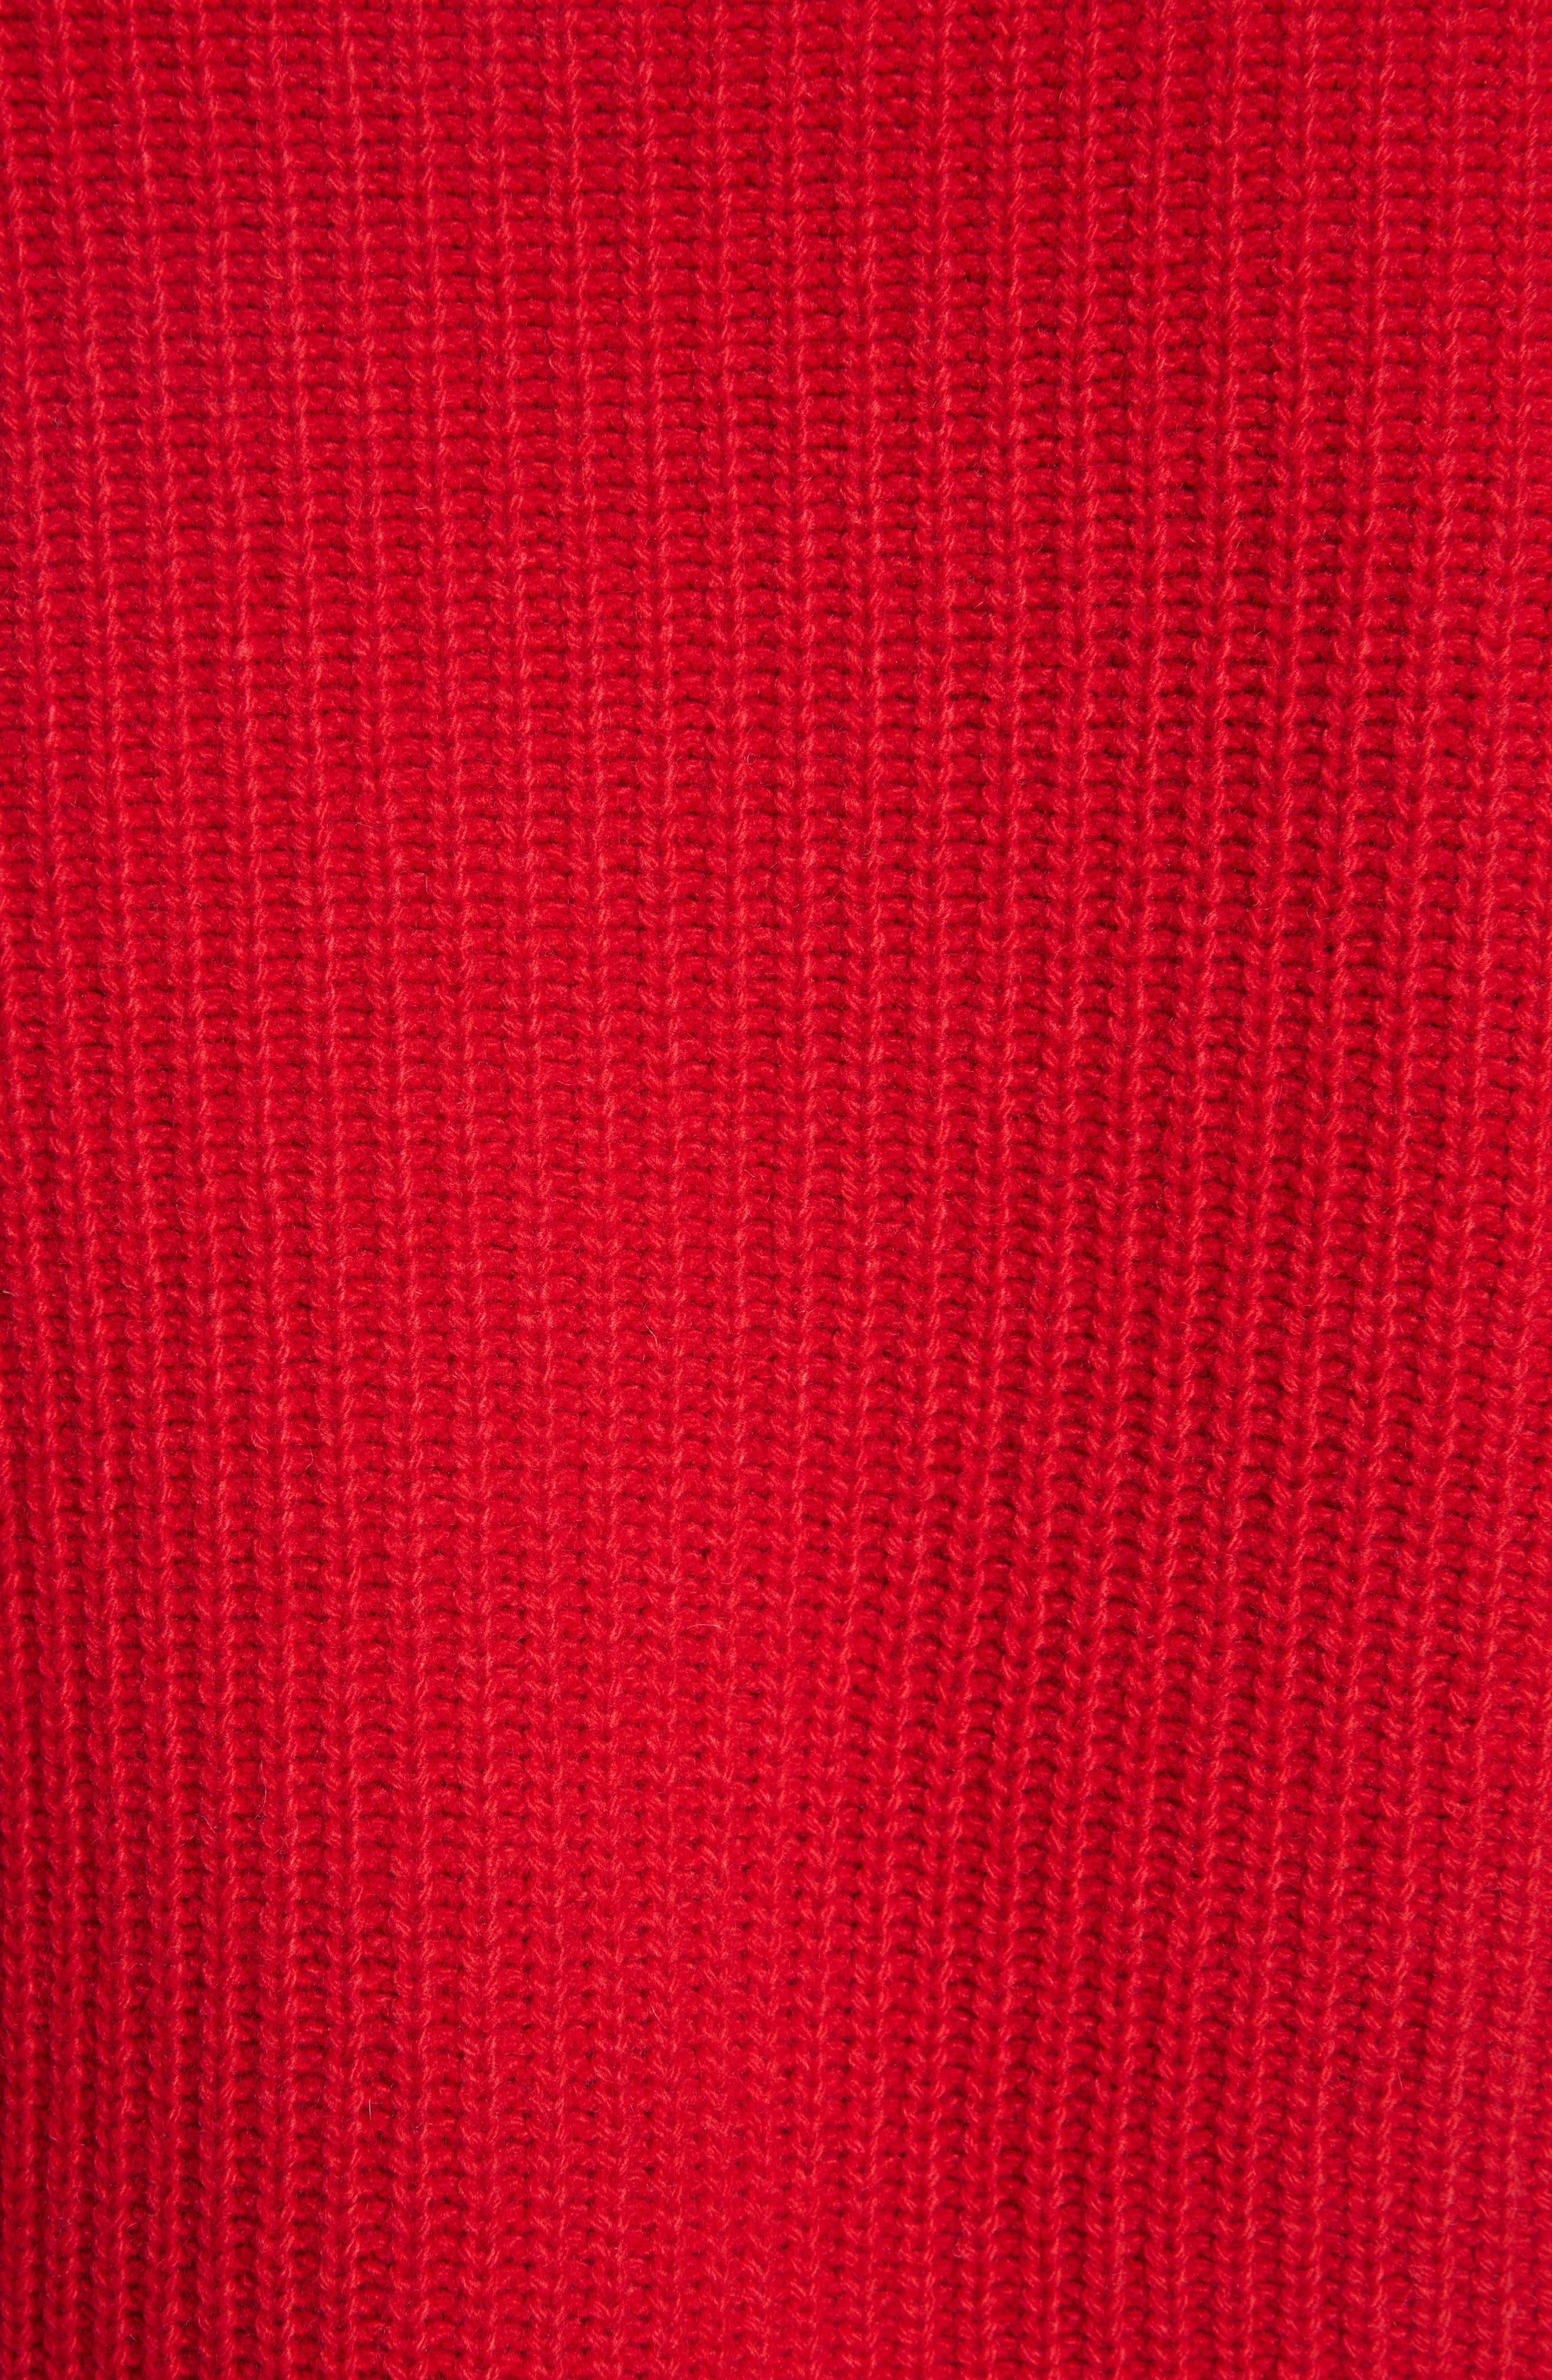 Kennedy Shaker Stitch Sweater,                             Alternate thumbnail 5, color,                             TRUE RED